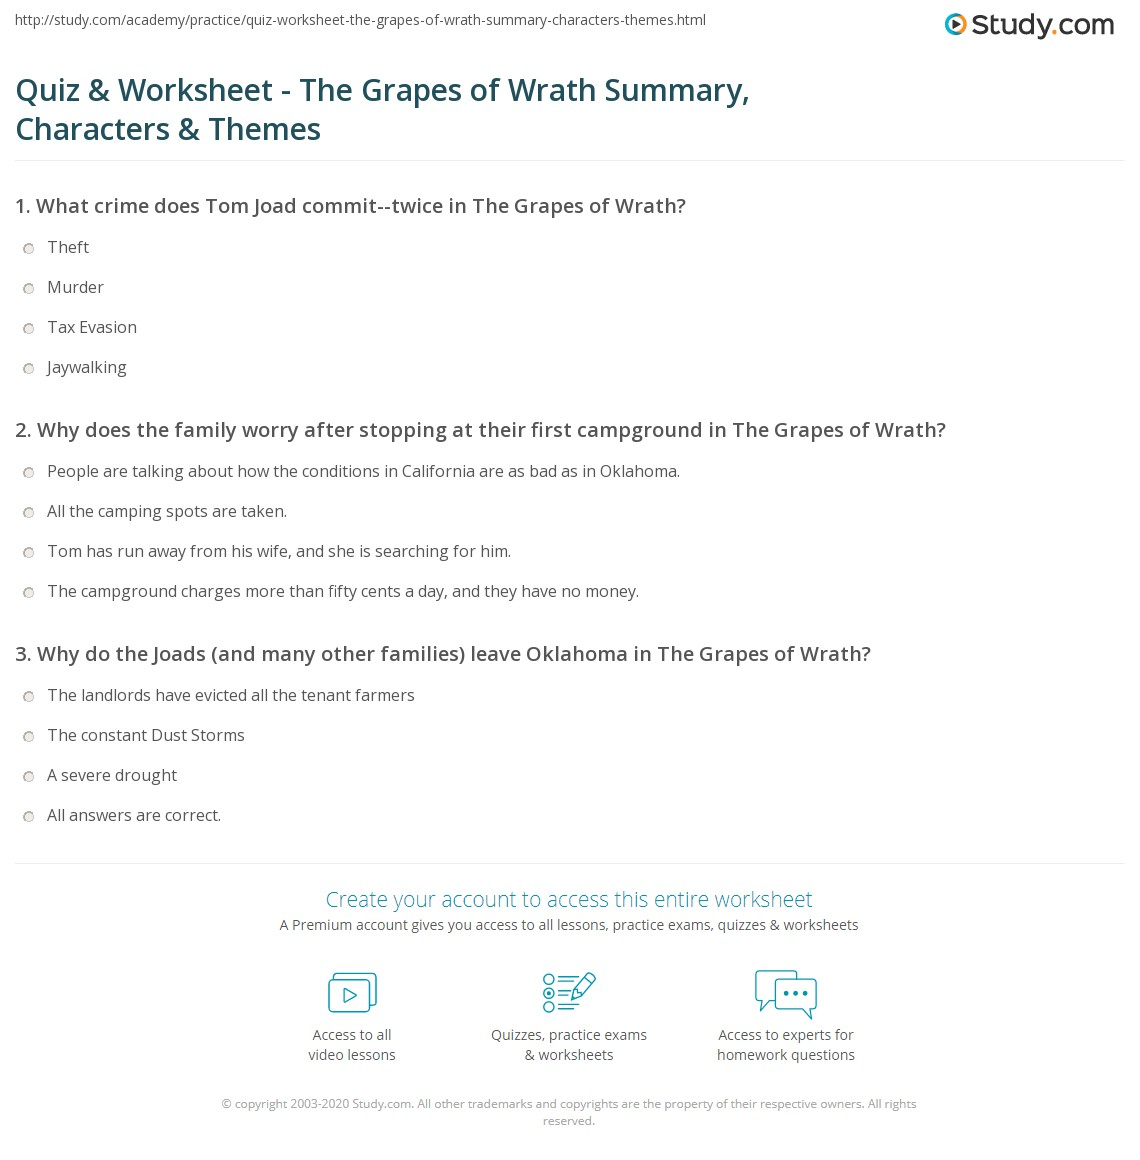 quiz worksheet the grapes of wrath summary characters themes. Black Bedroom Furniture Sets. Home Design Ideas